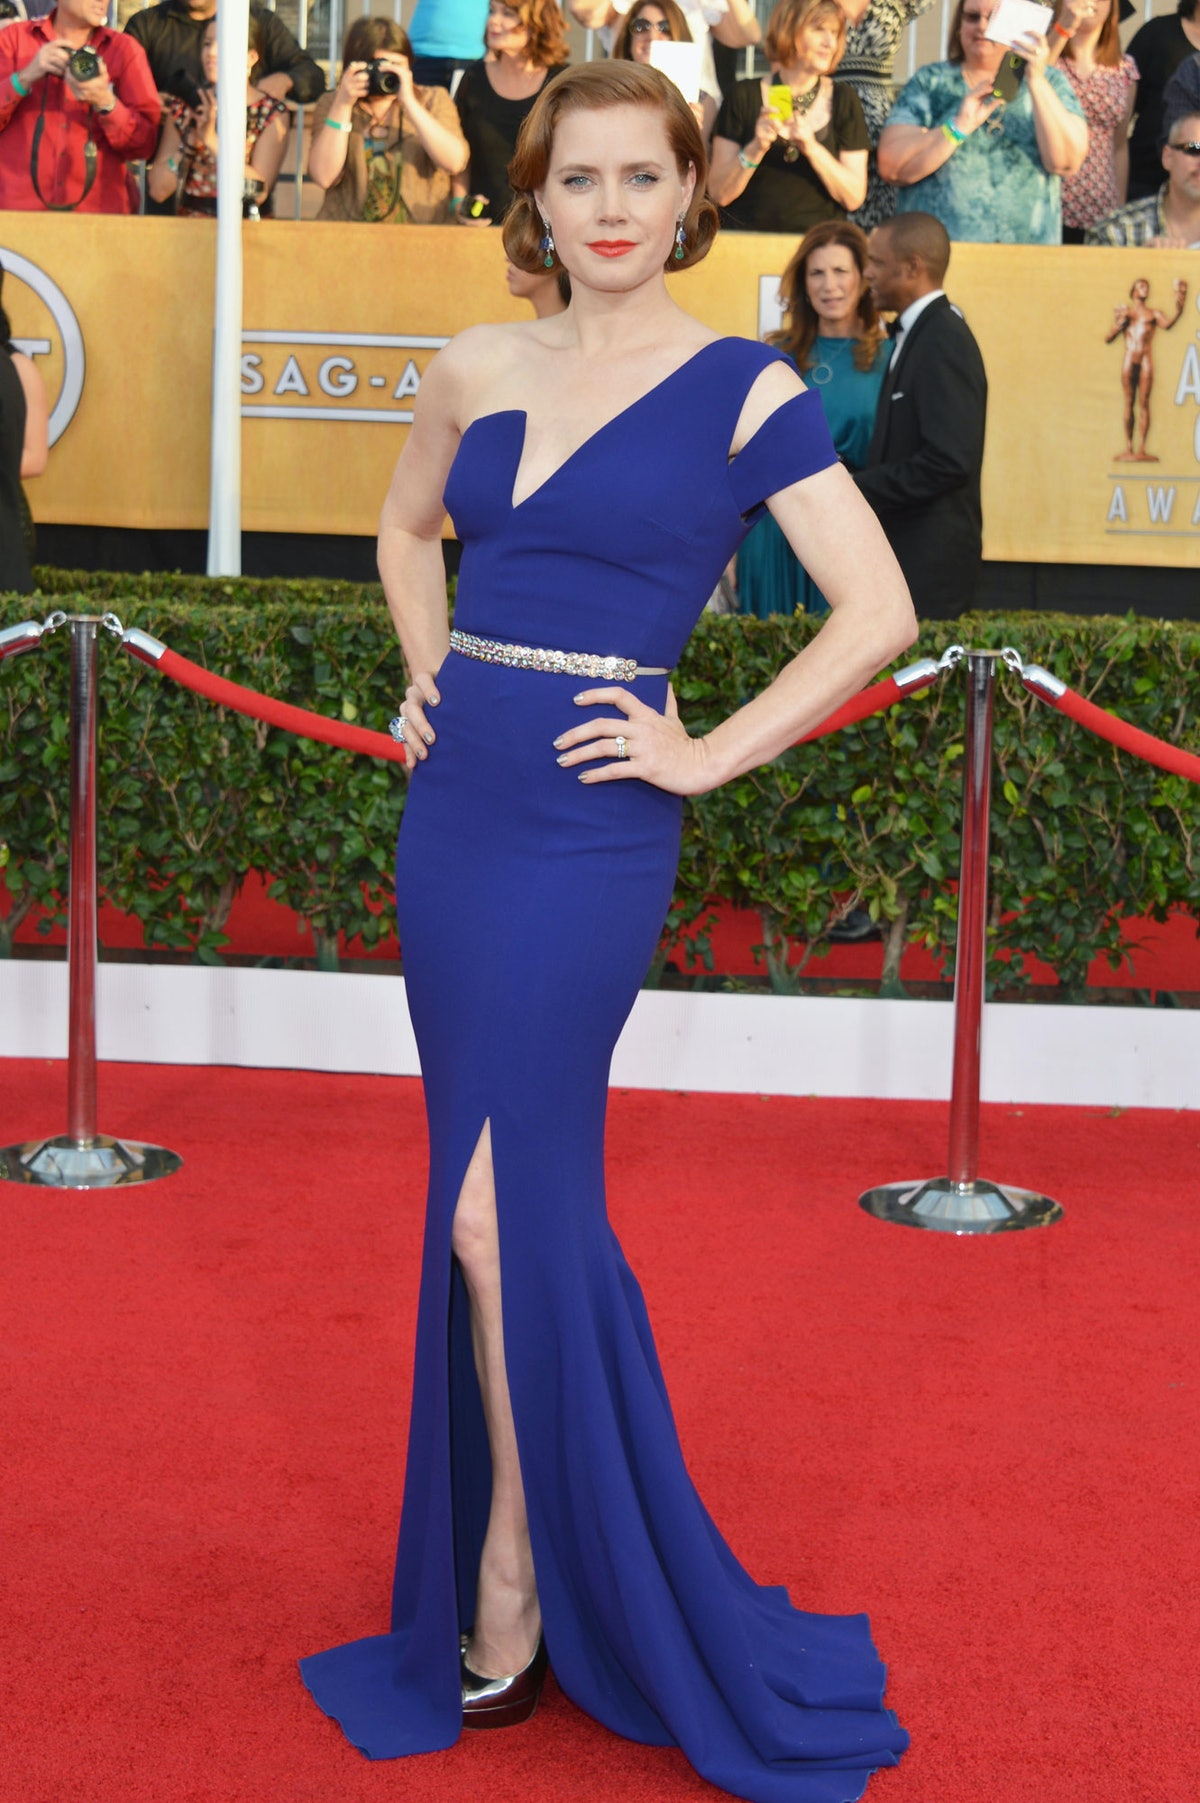 Old Hollywood was the name of the game at the 2014 SAG Awards. With a faux bob, and red lips, [Amy Adams](http://www.wmagazine.com/mood-board/filter?q=%5ECelebrity%7CAmy%20Adams%7C) was the epitome of old-school [glam](http://www.wmagazine.com/mood-board/filter?q=%5ETheme%7CGlam%7C) in royal blue Antonio Berardi, silver [Jimmy Choo](http://www.wmagazine.com/mood-board/filter?q=%5EDesigner%7CJimmy%20Choo%7C) platforms (with matching nail polish), and classic Cartier jewels. Photo by Getty Images.